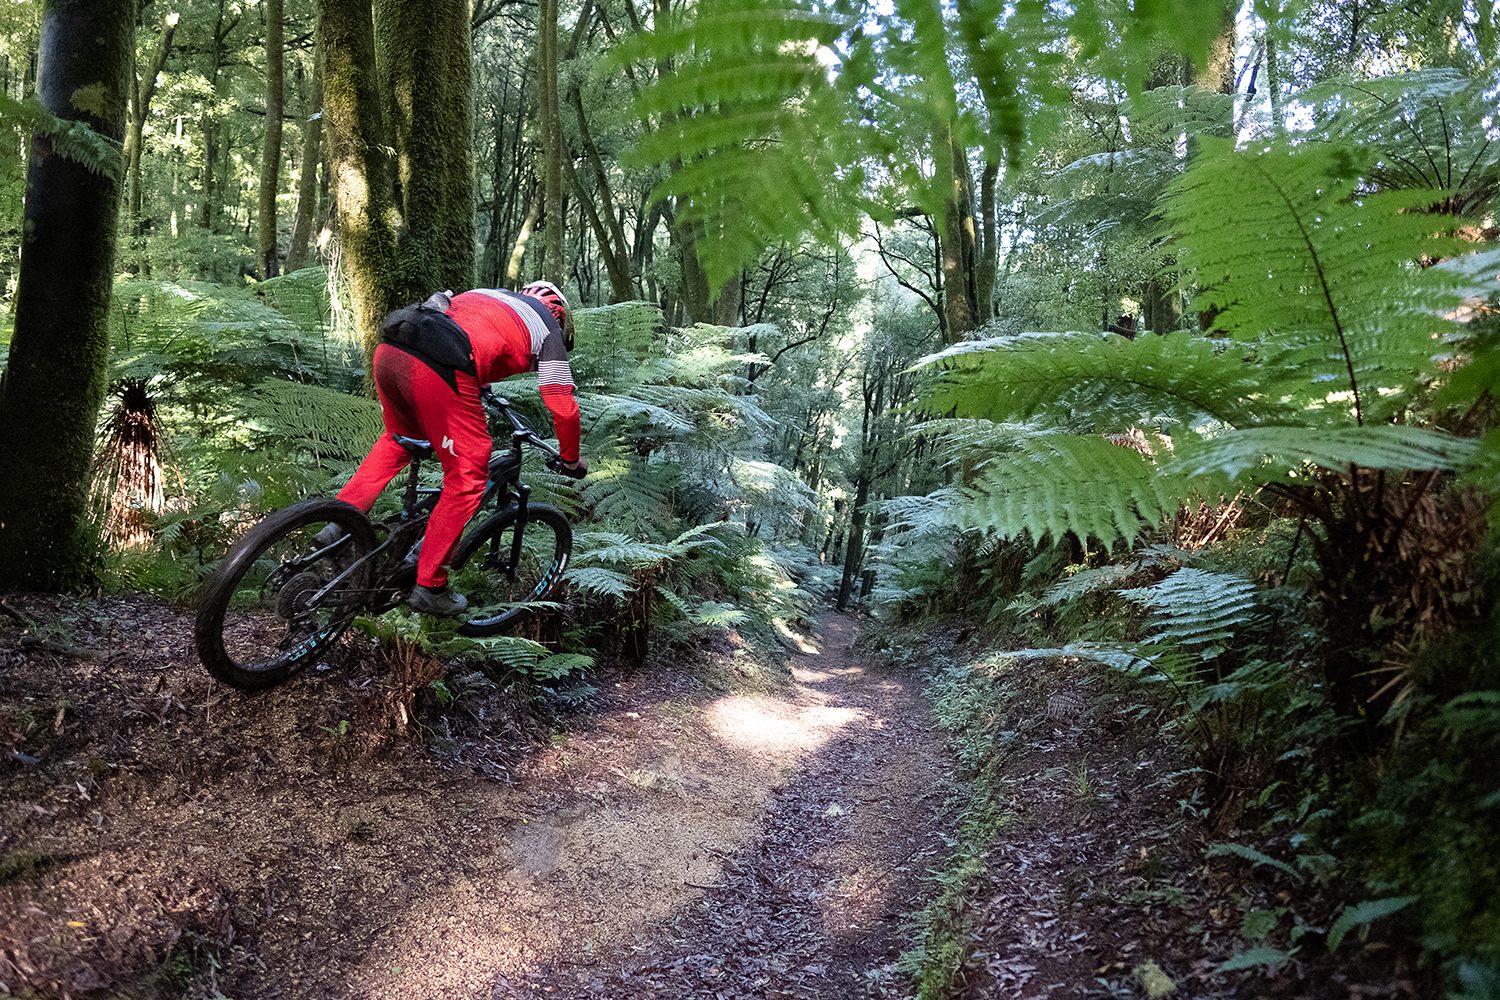 Consider your favourite adventure ride. Can you do it differently? -